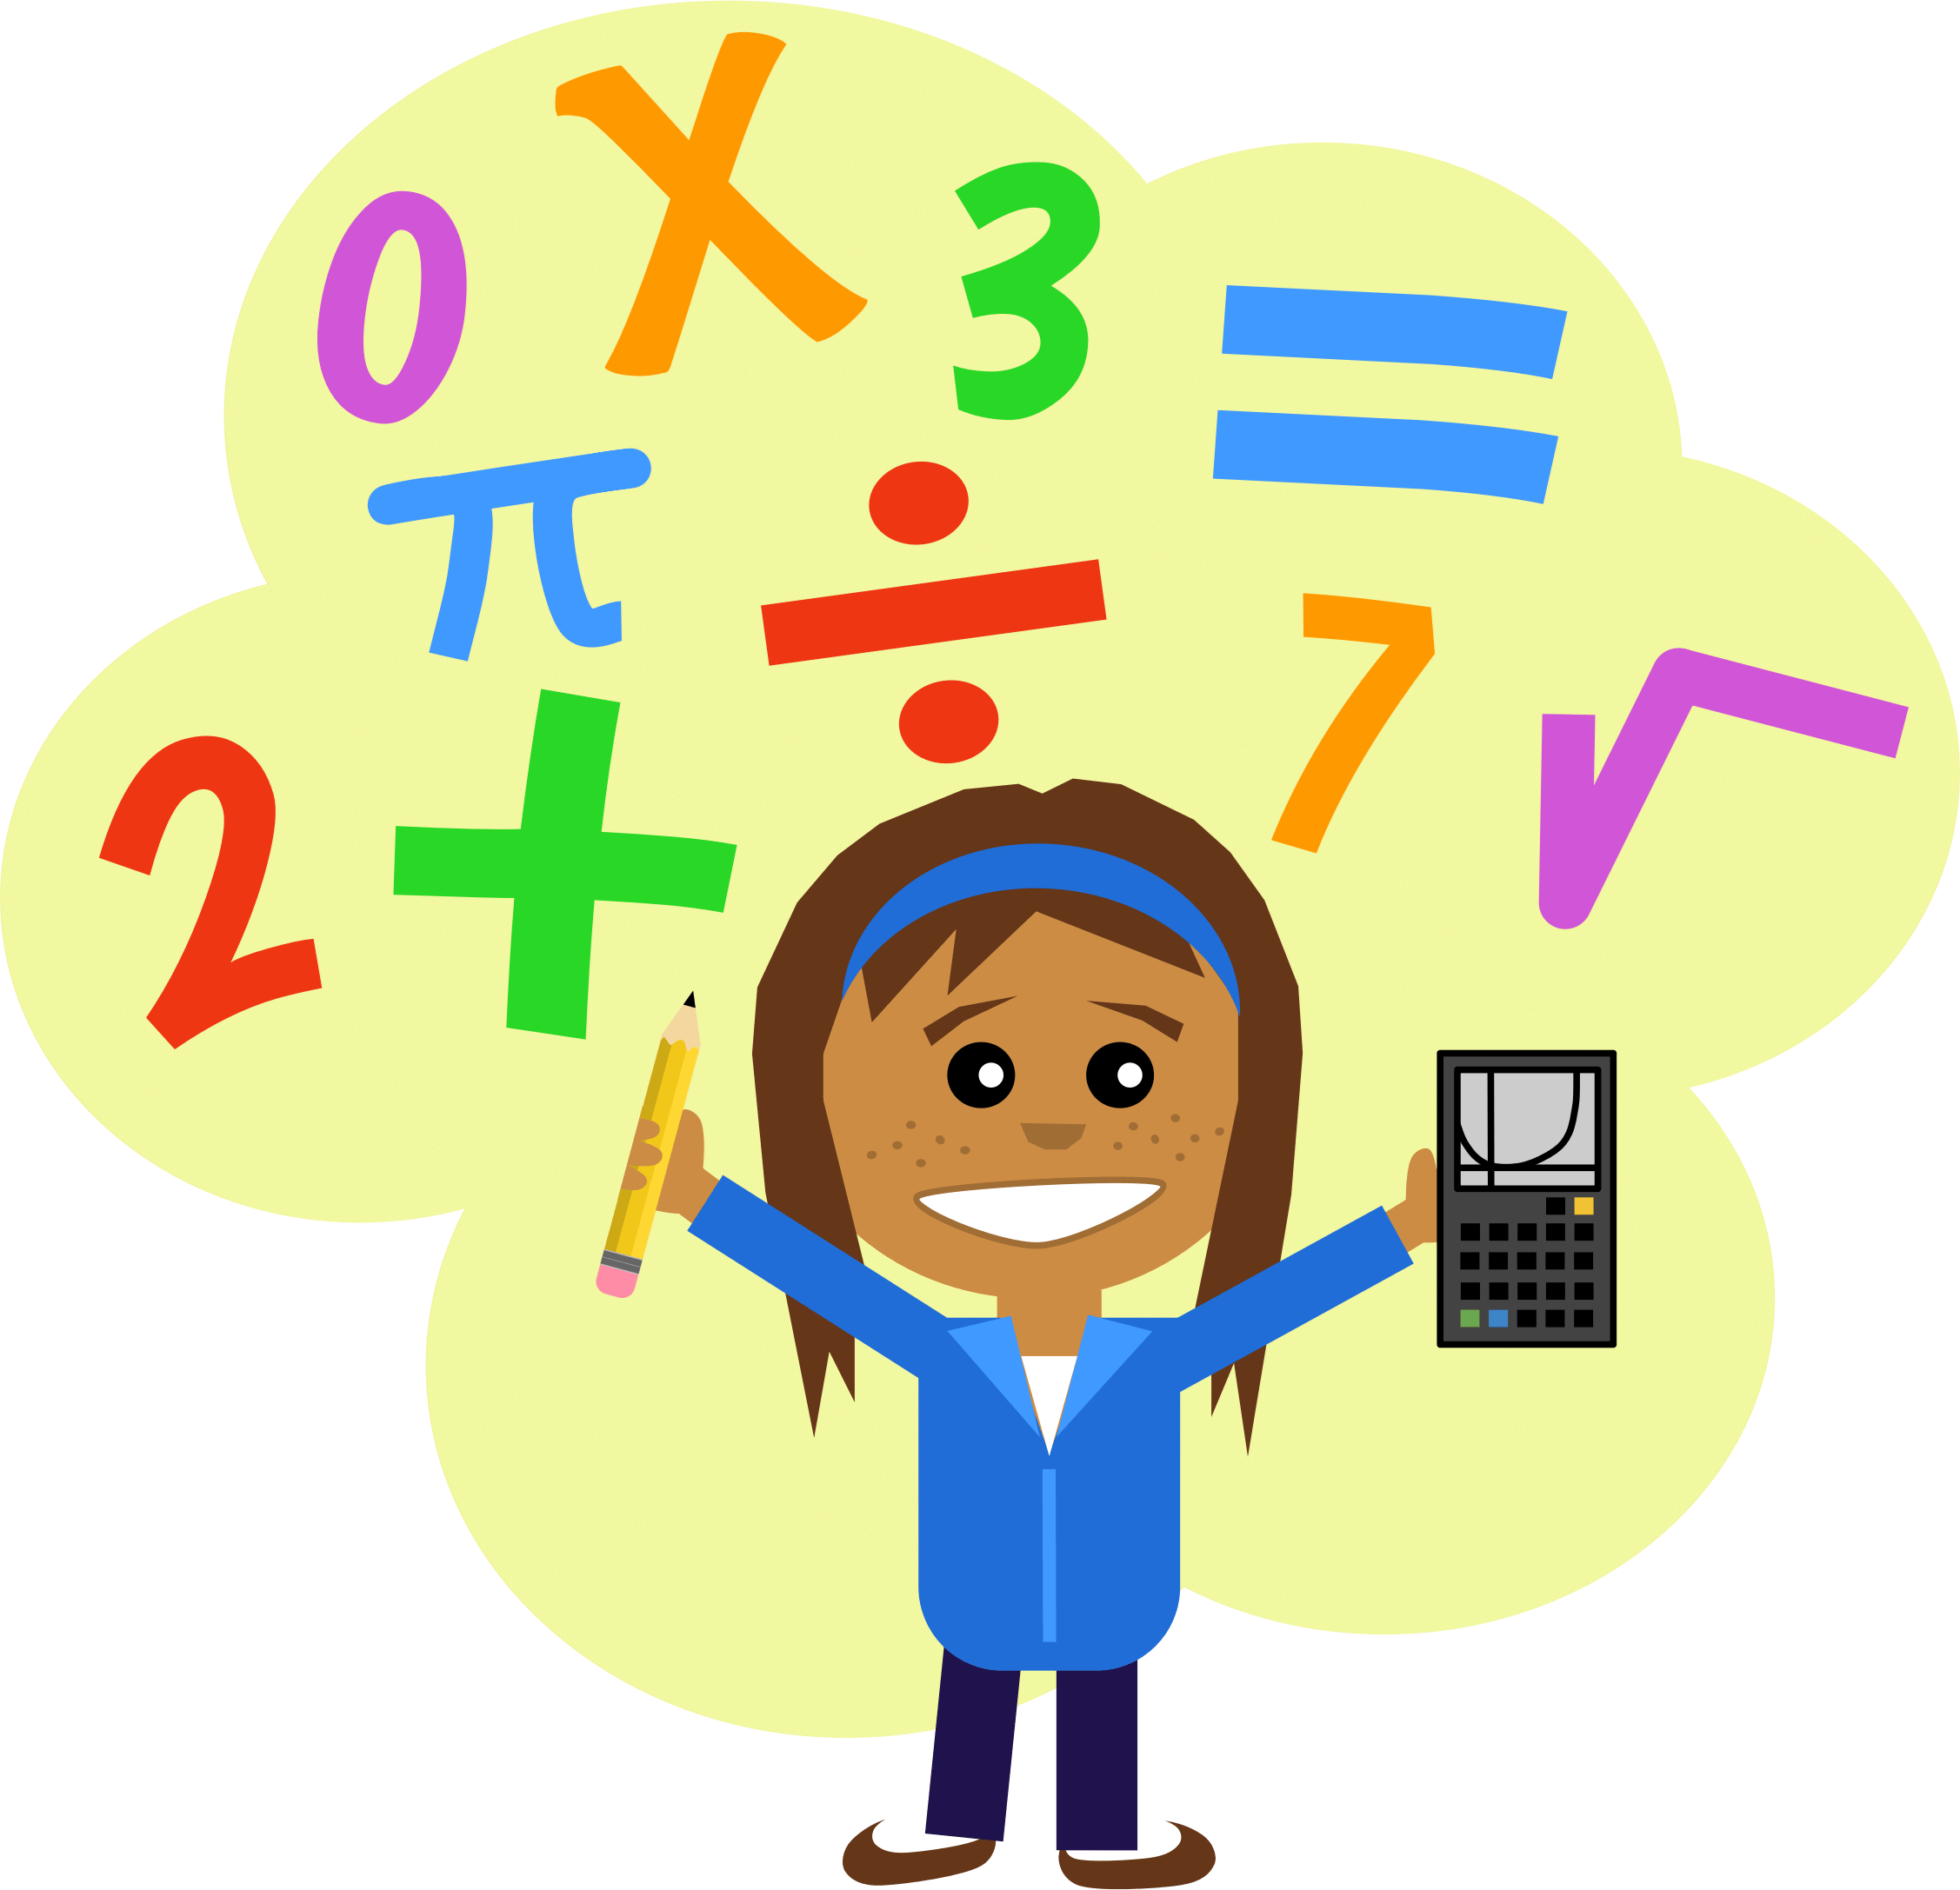 Math subject clipart graphic black and white library Pictures For Maths | Free download best Pictures For Maths ... graphic black and white library